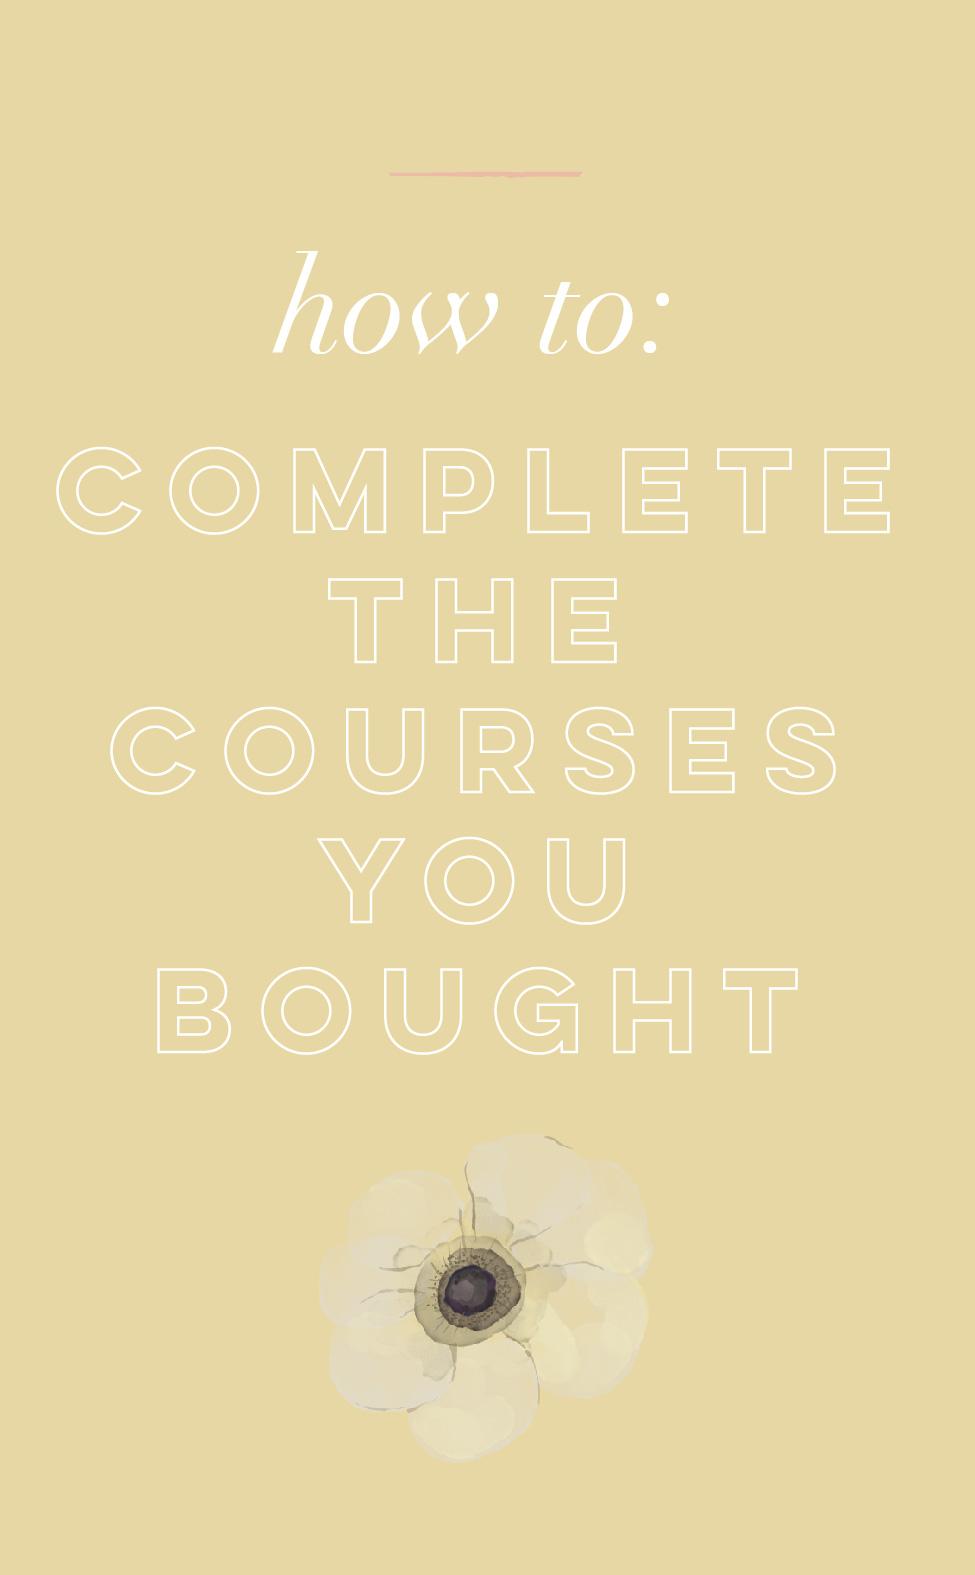 completethecoursesyoubought.jpg